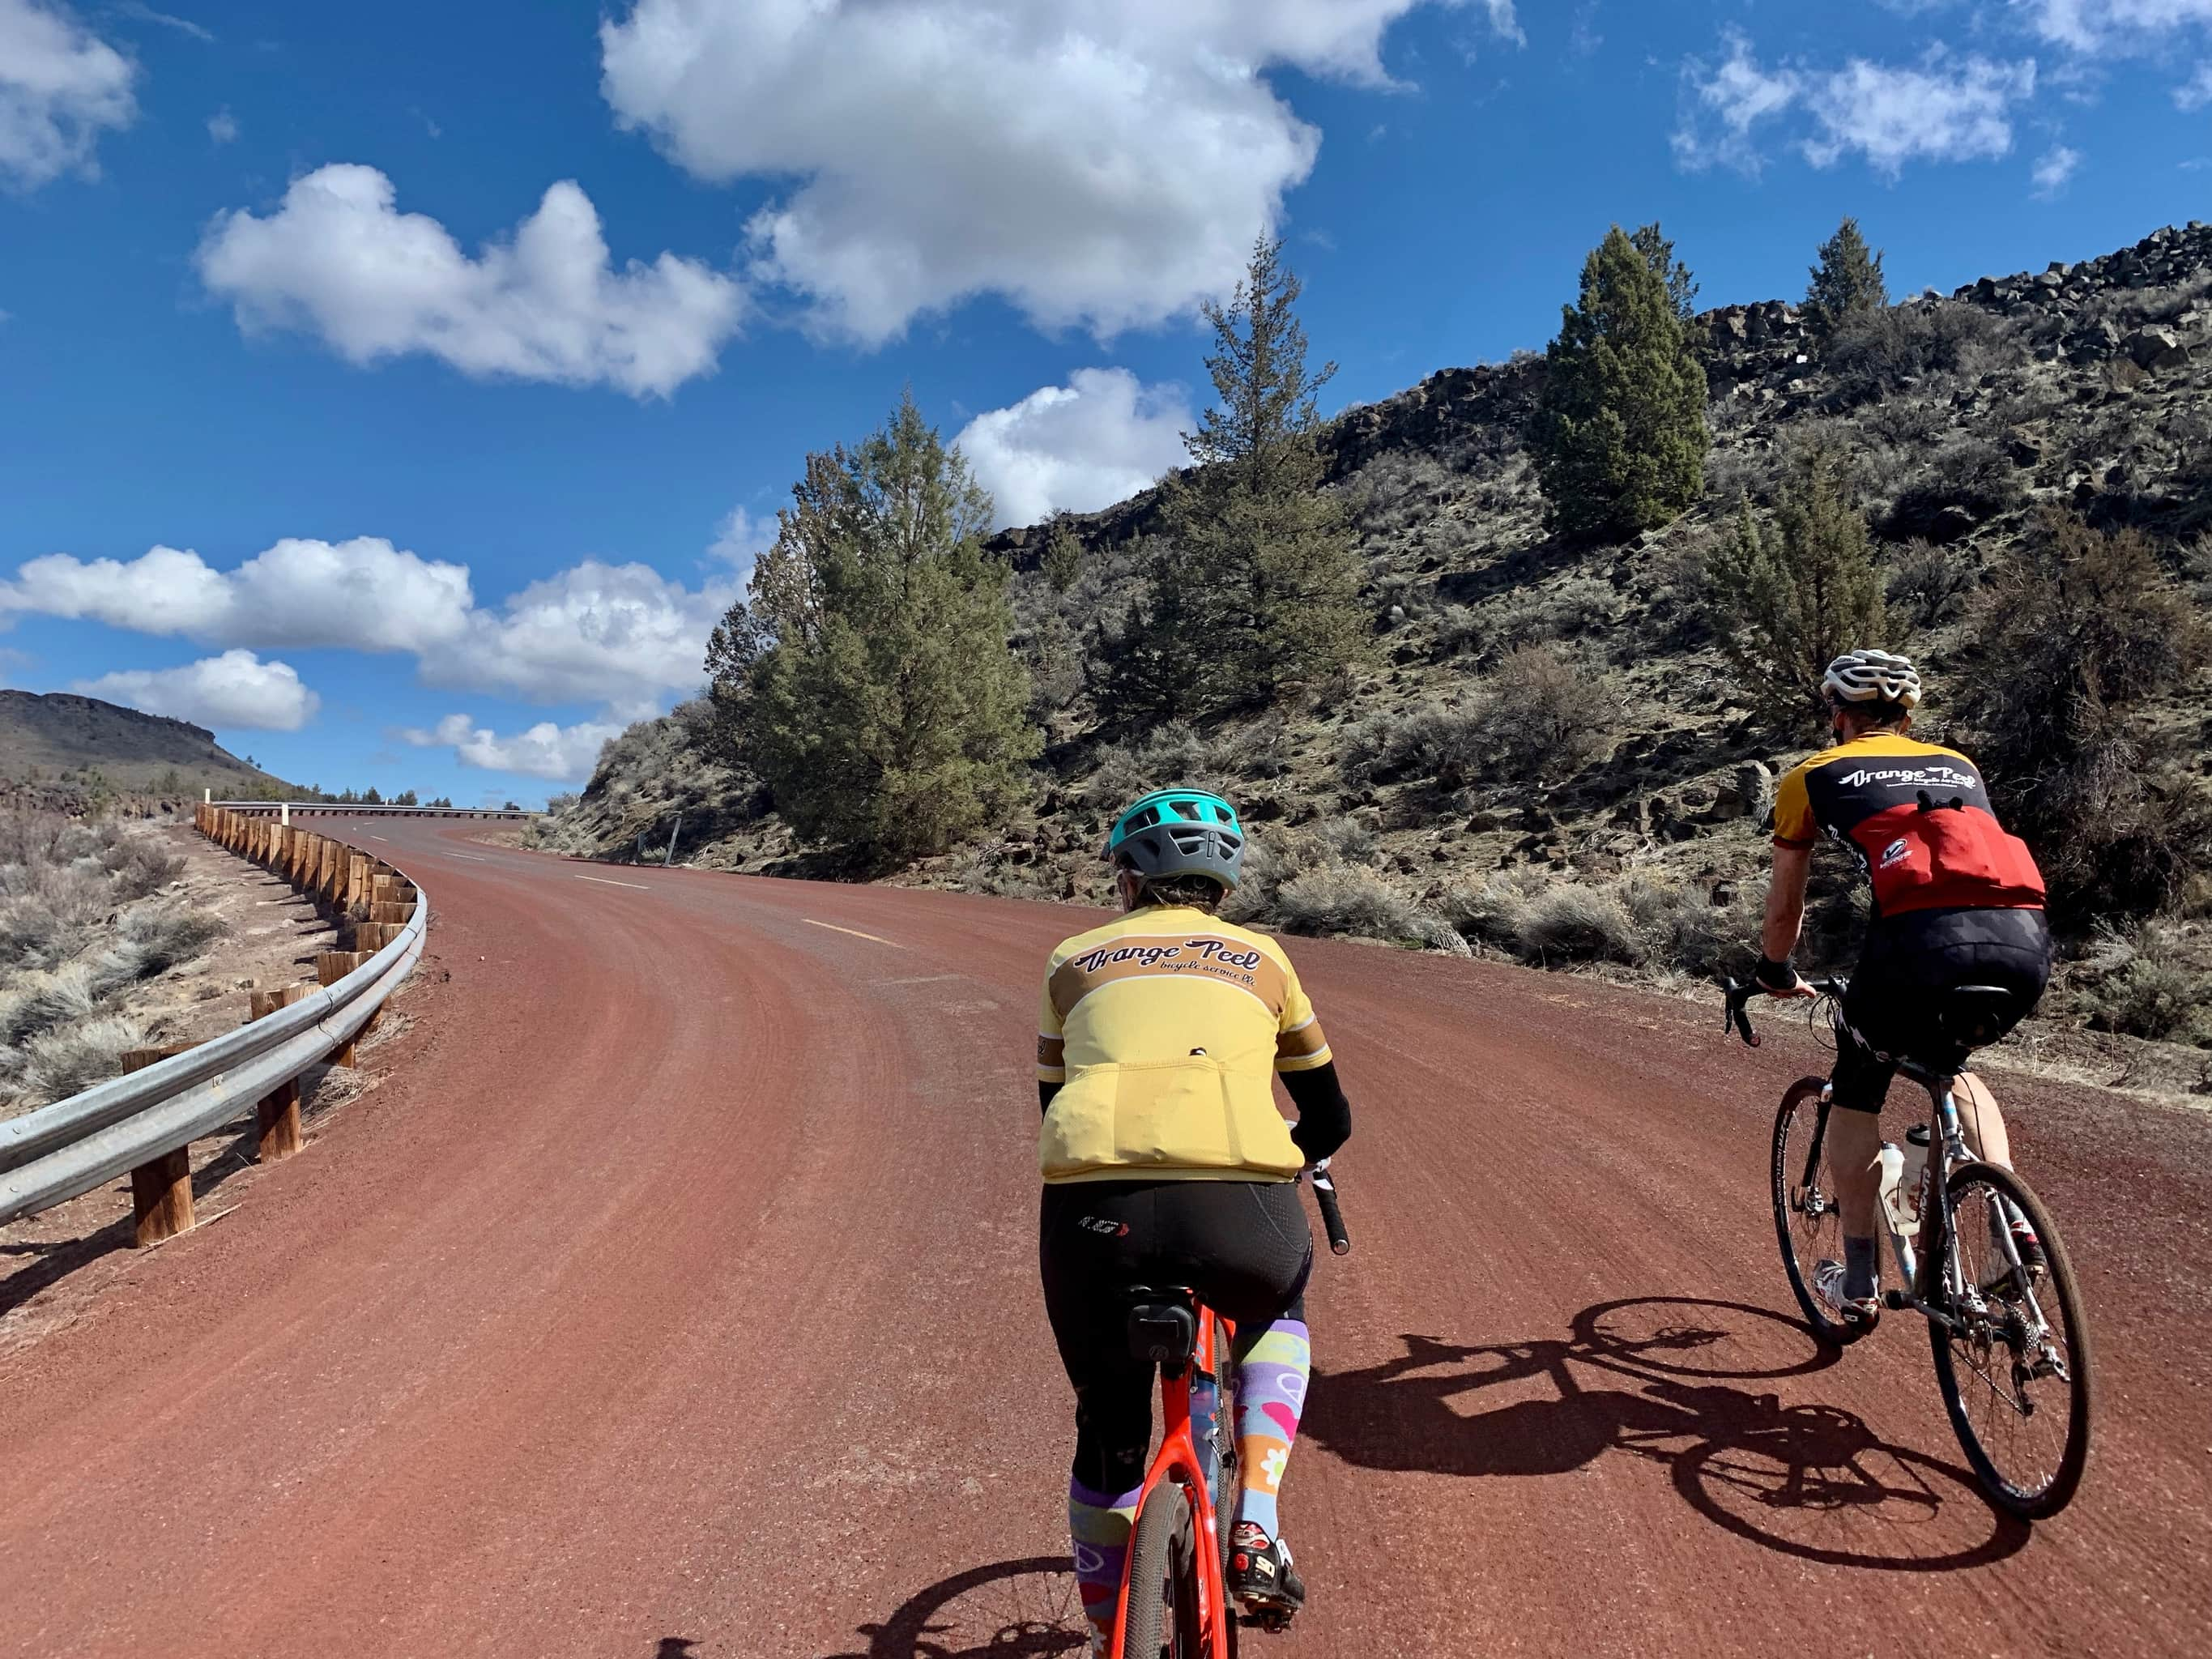 Cyclists on short, steep pitch of paved road on Warm Springs Indian reservation.